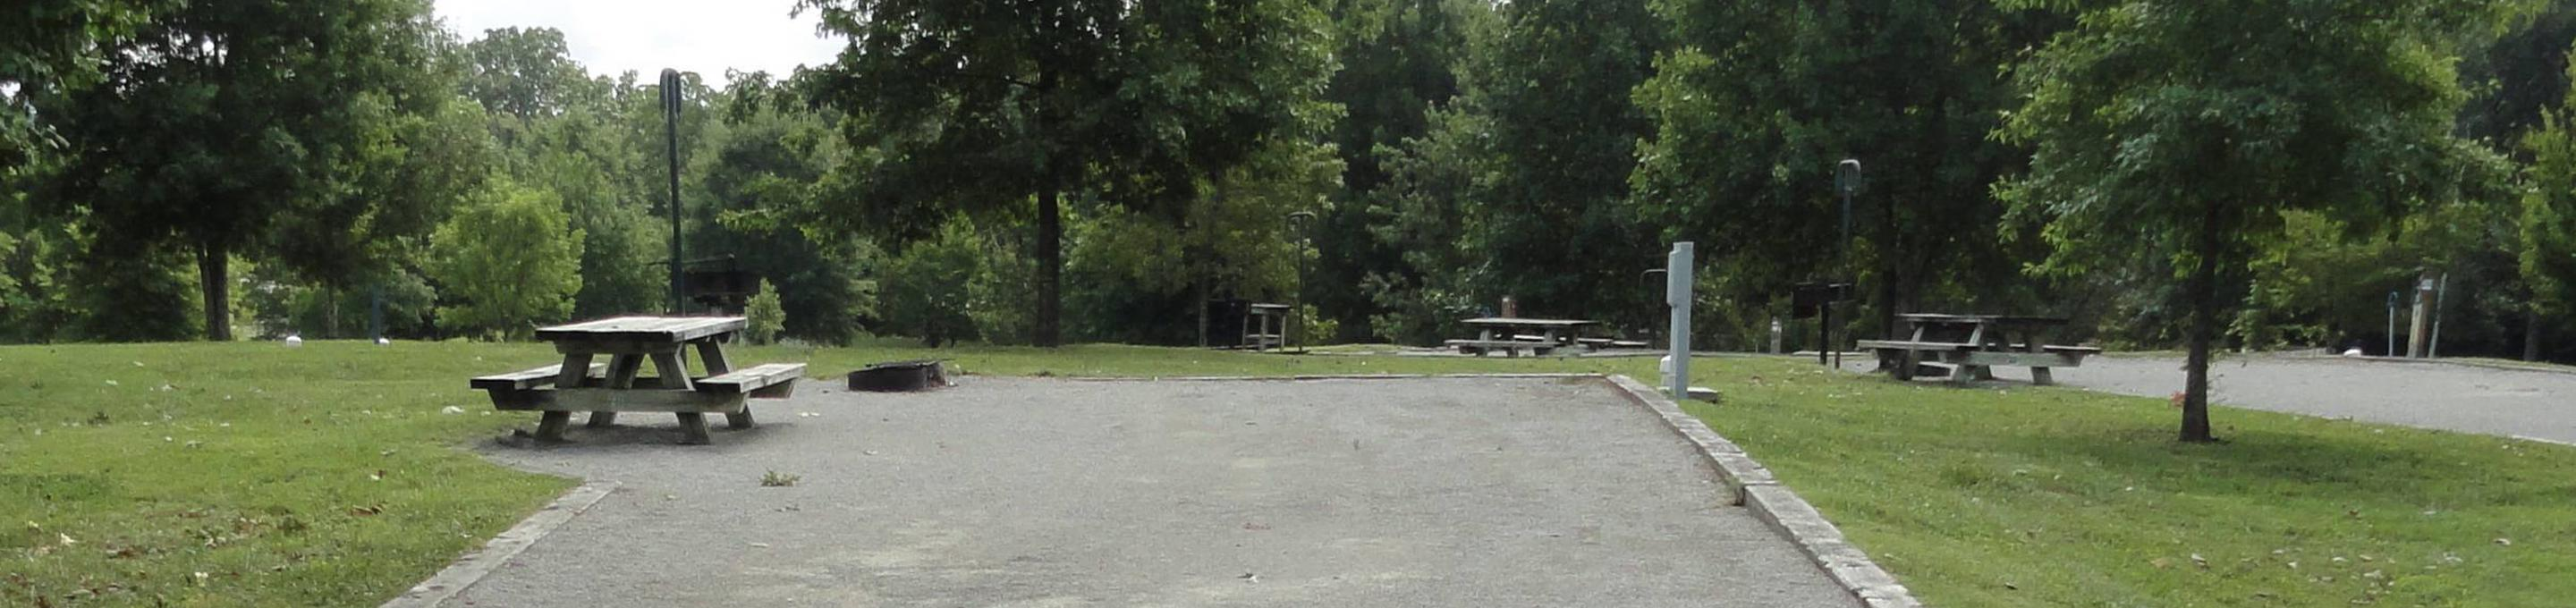 WILLOW GROVE CAMPGROUND SITE #78